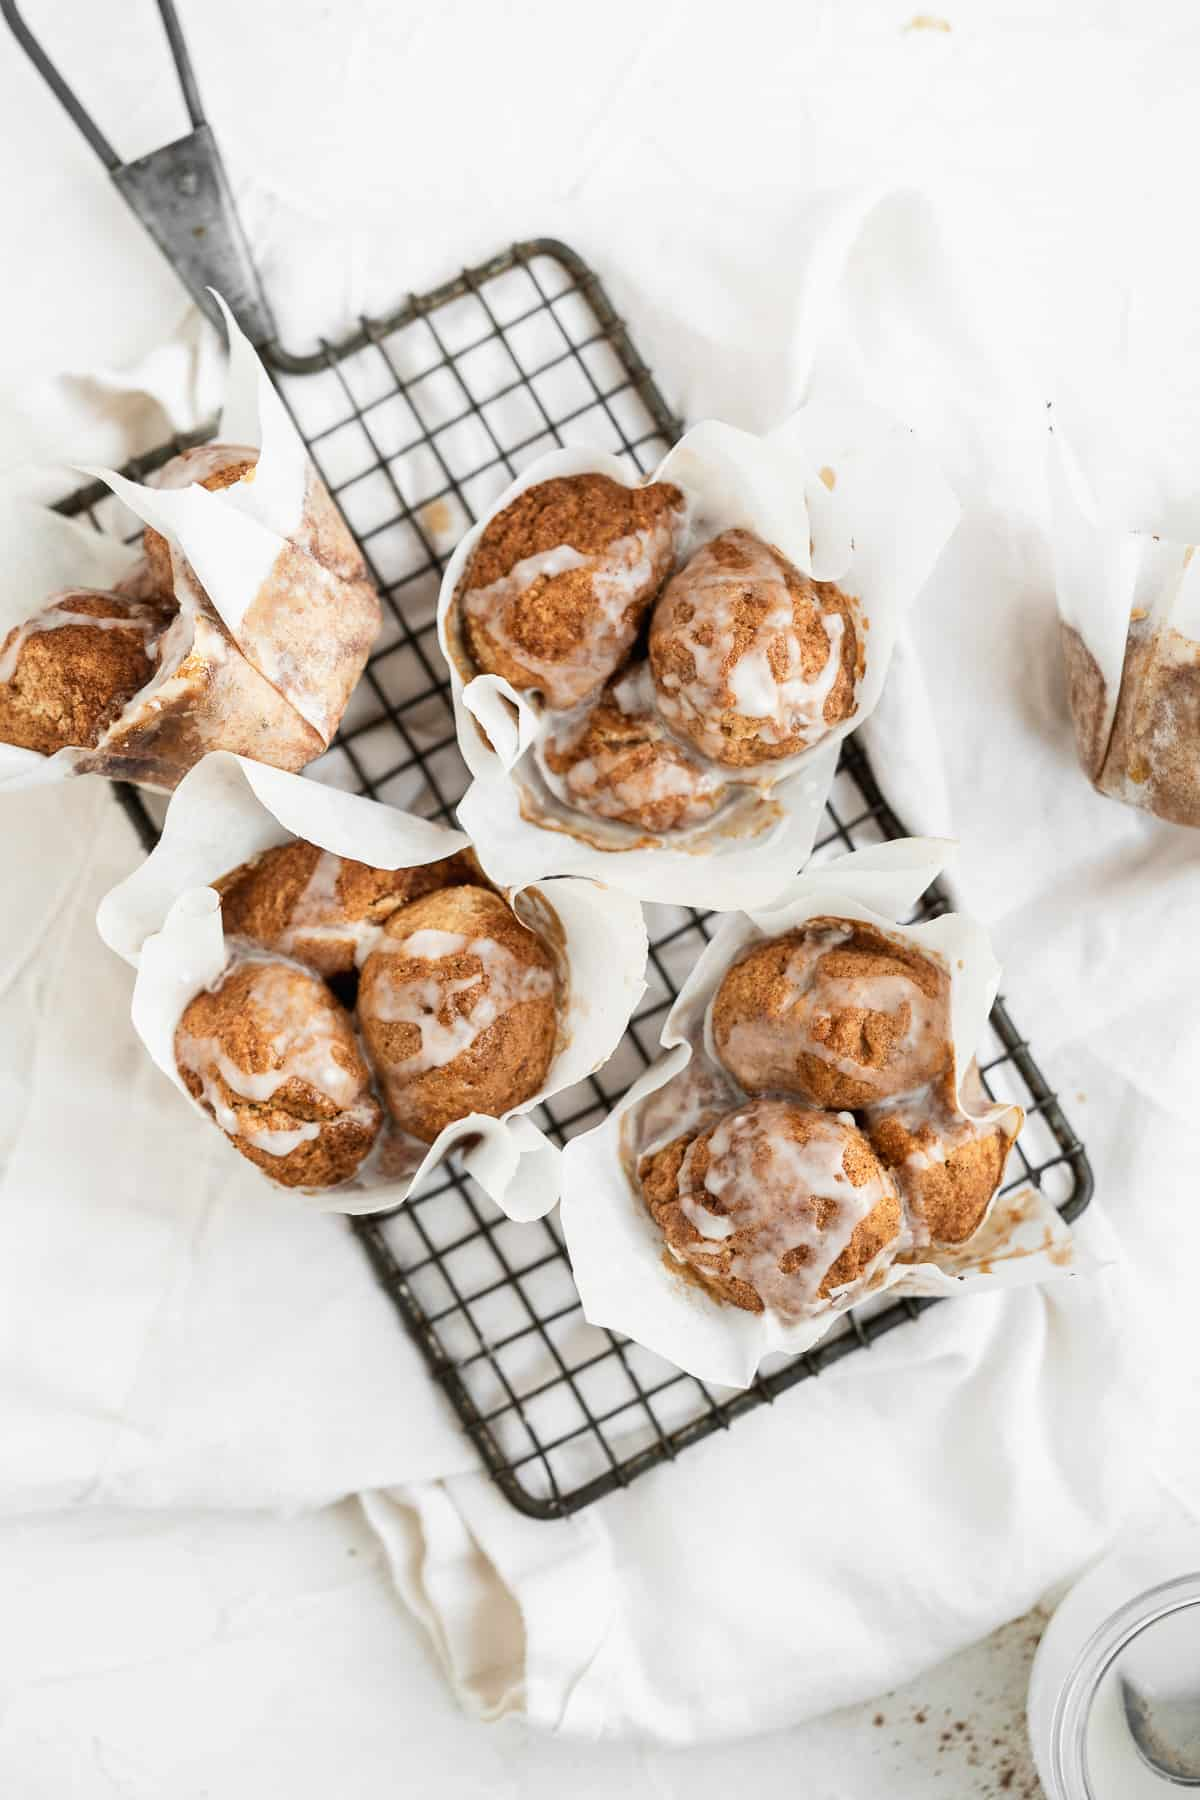 Muffins with white paper liners scattered on a cooling rack with glaze.